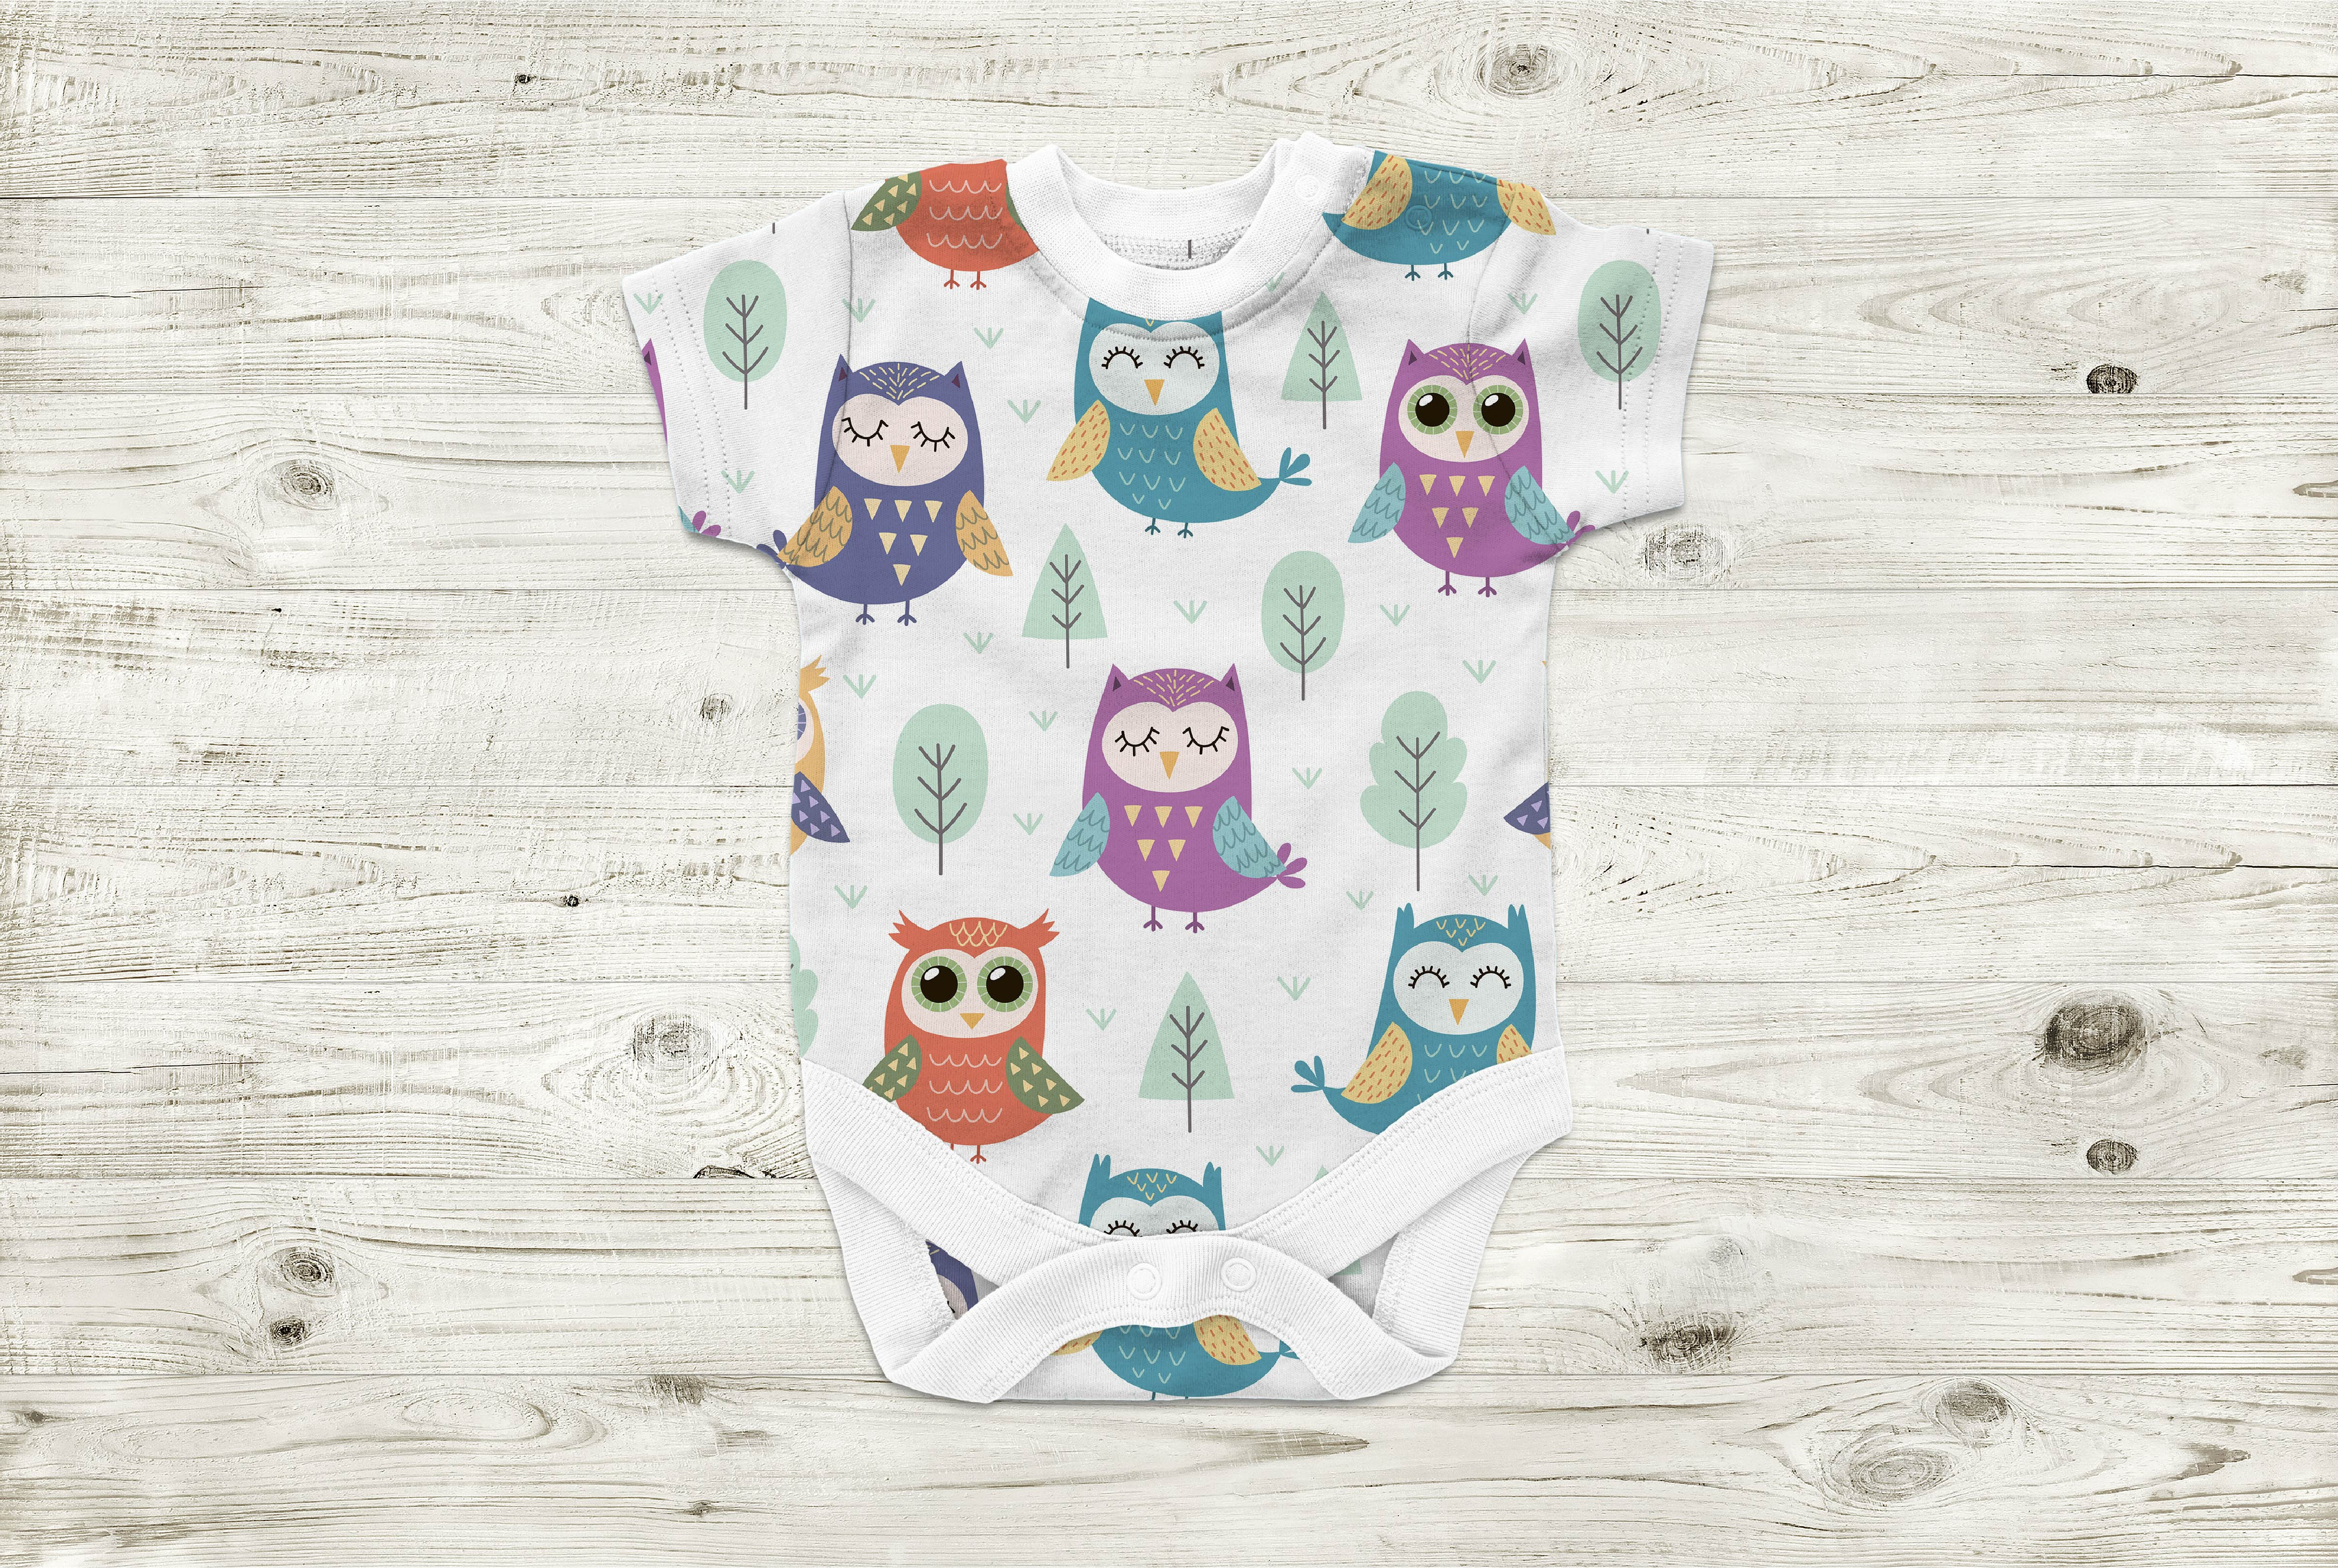 Owl Tales: seamless pattern & elements example image 4